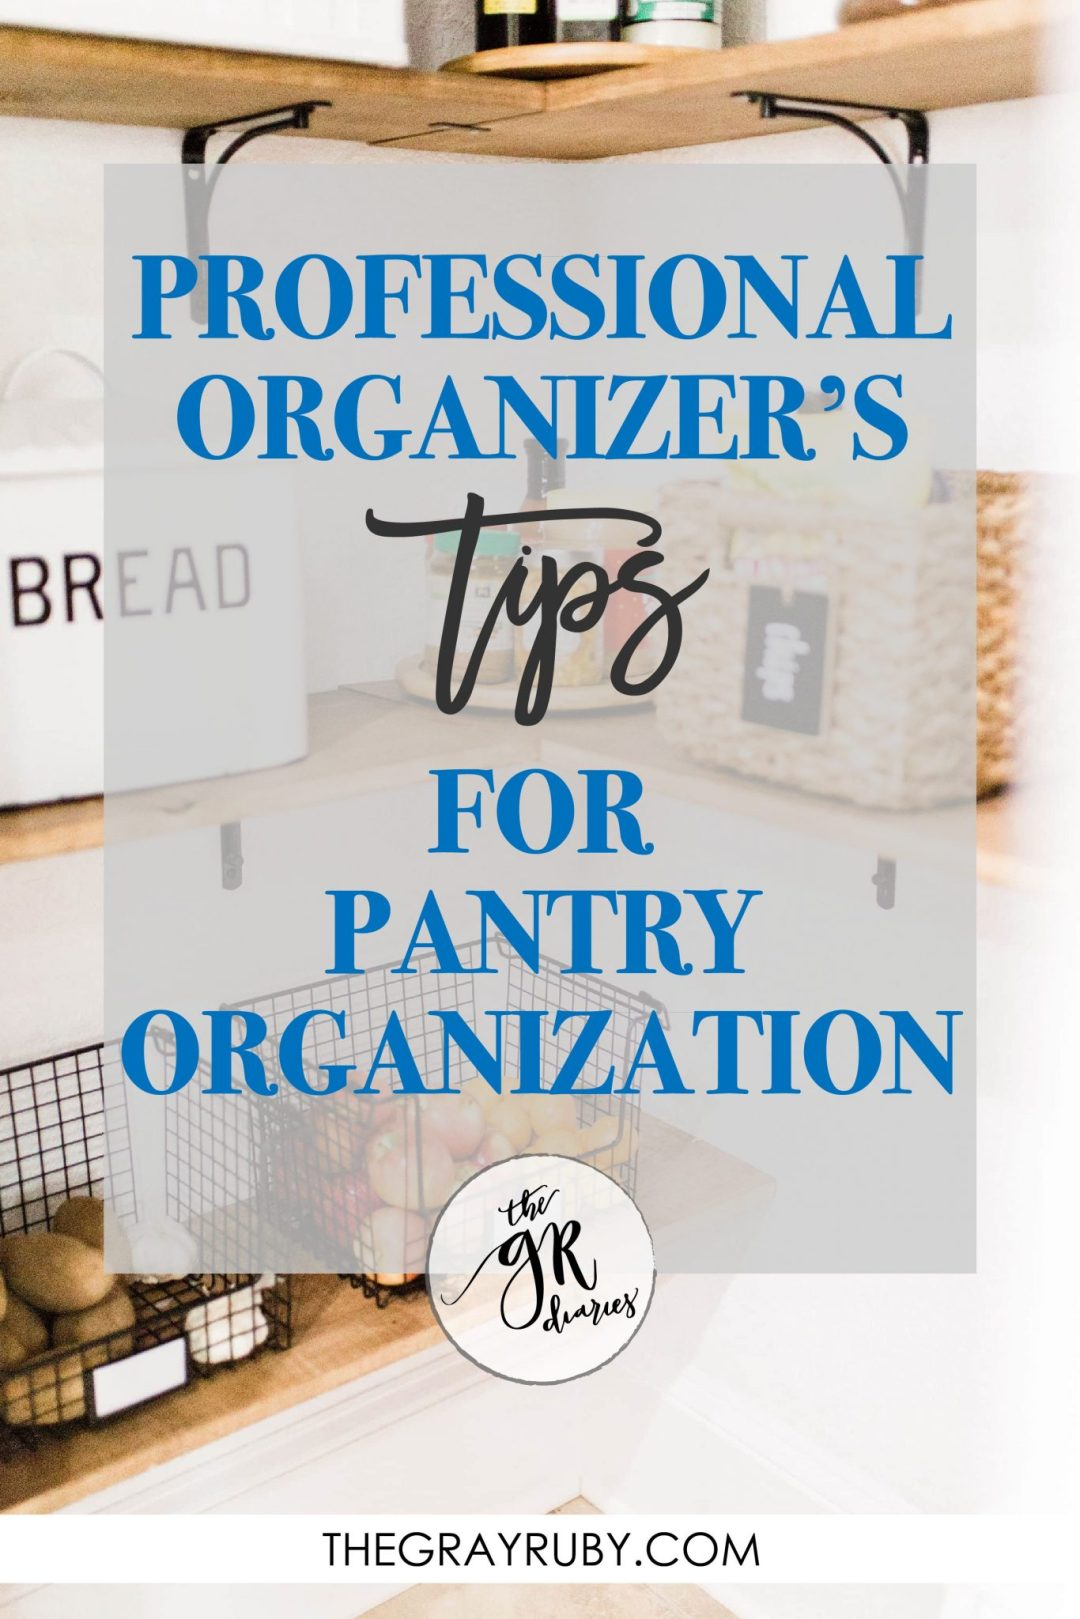 Organizing your pantry - tips from a professional organizer